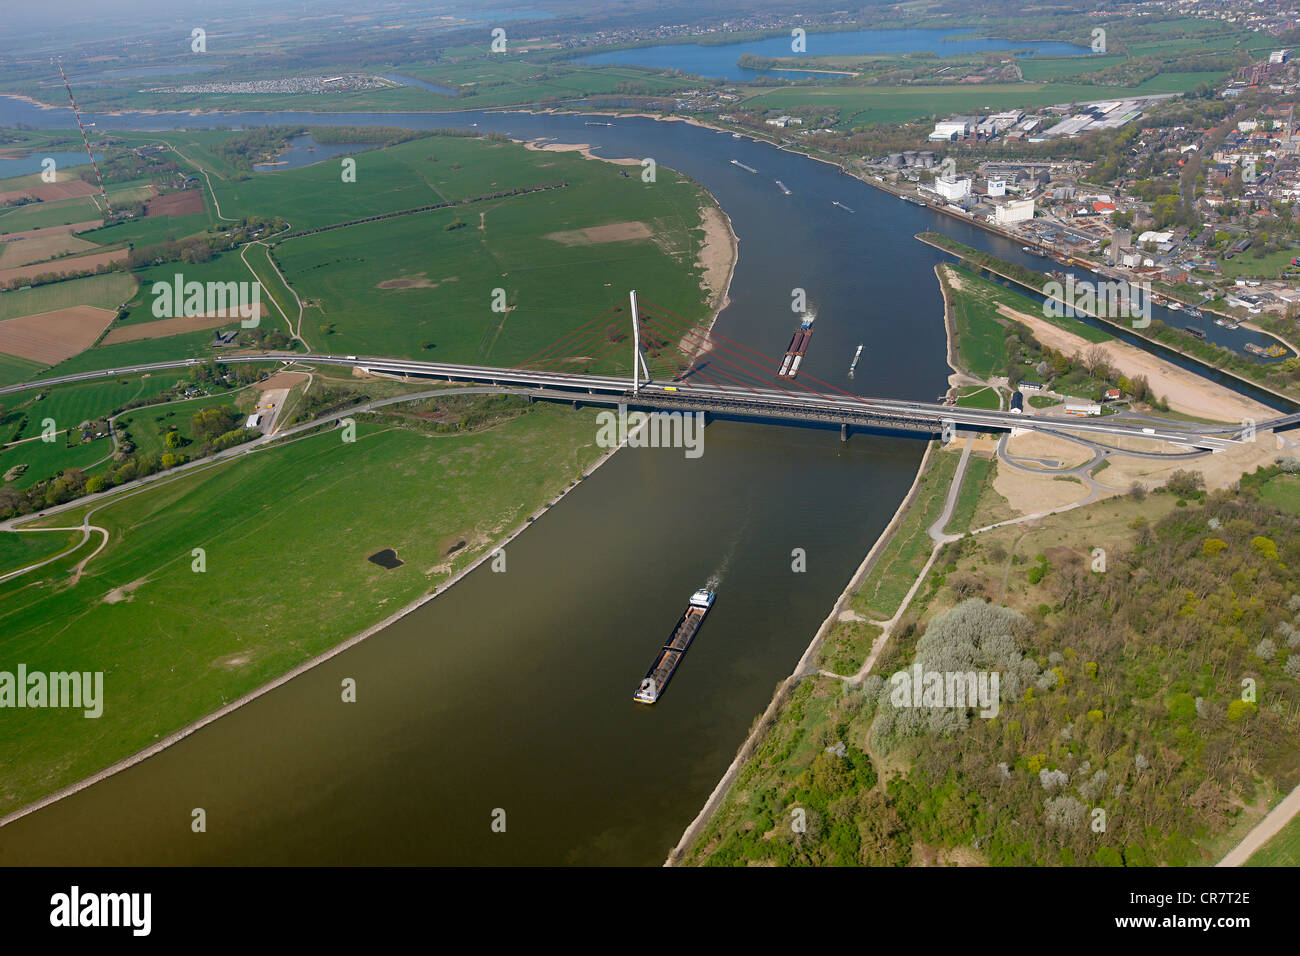 Aerial view, Lippe estuary, Lippe conversion, construction site, Rhine river, Lippe Association, Wesel, Ruhrgebiet - Stock Image